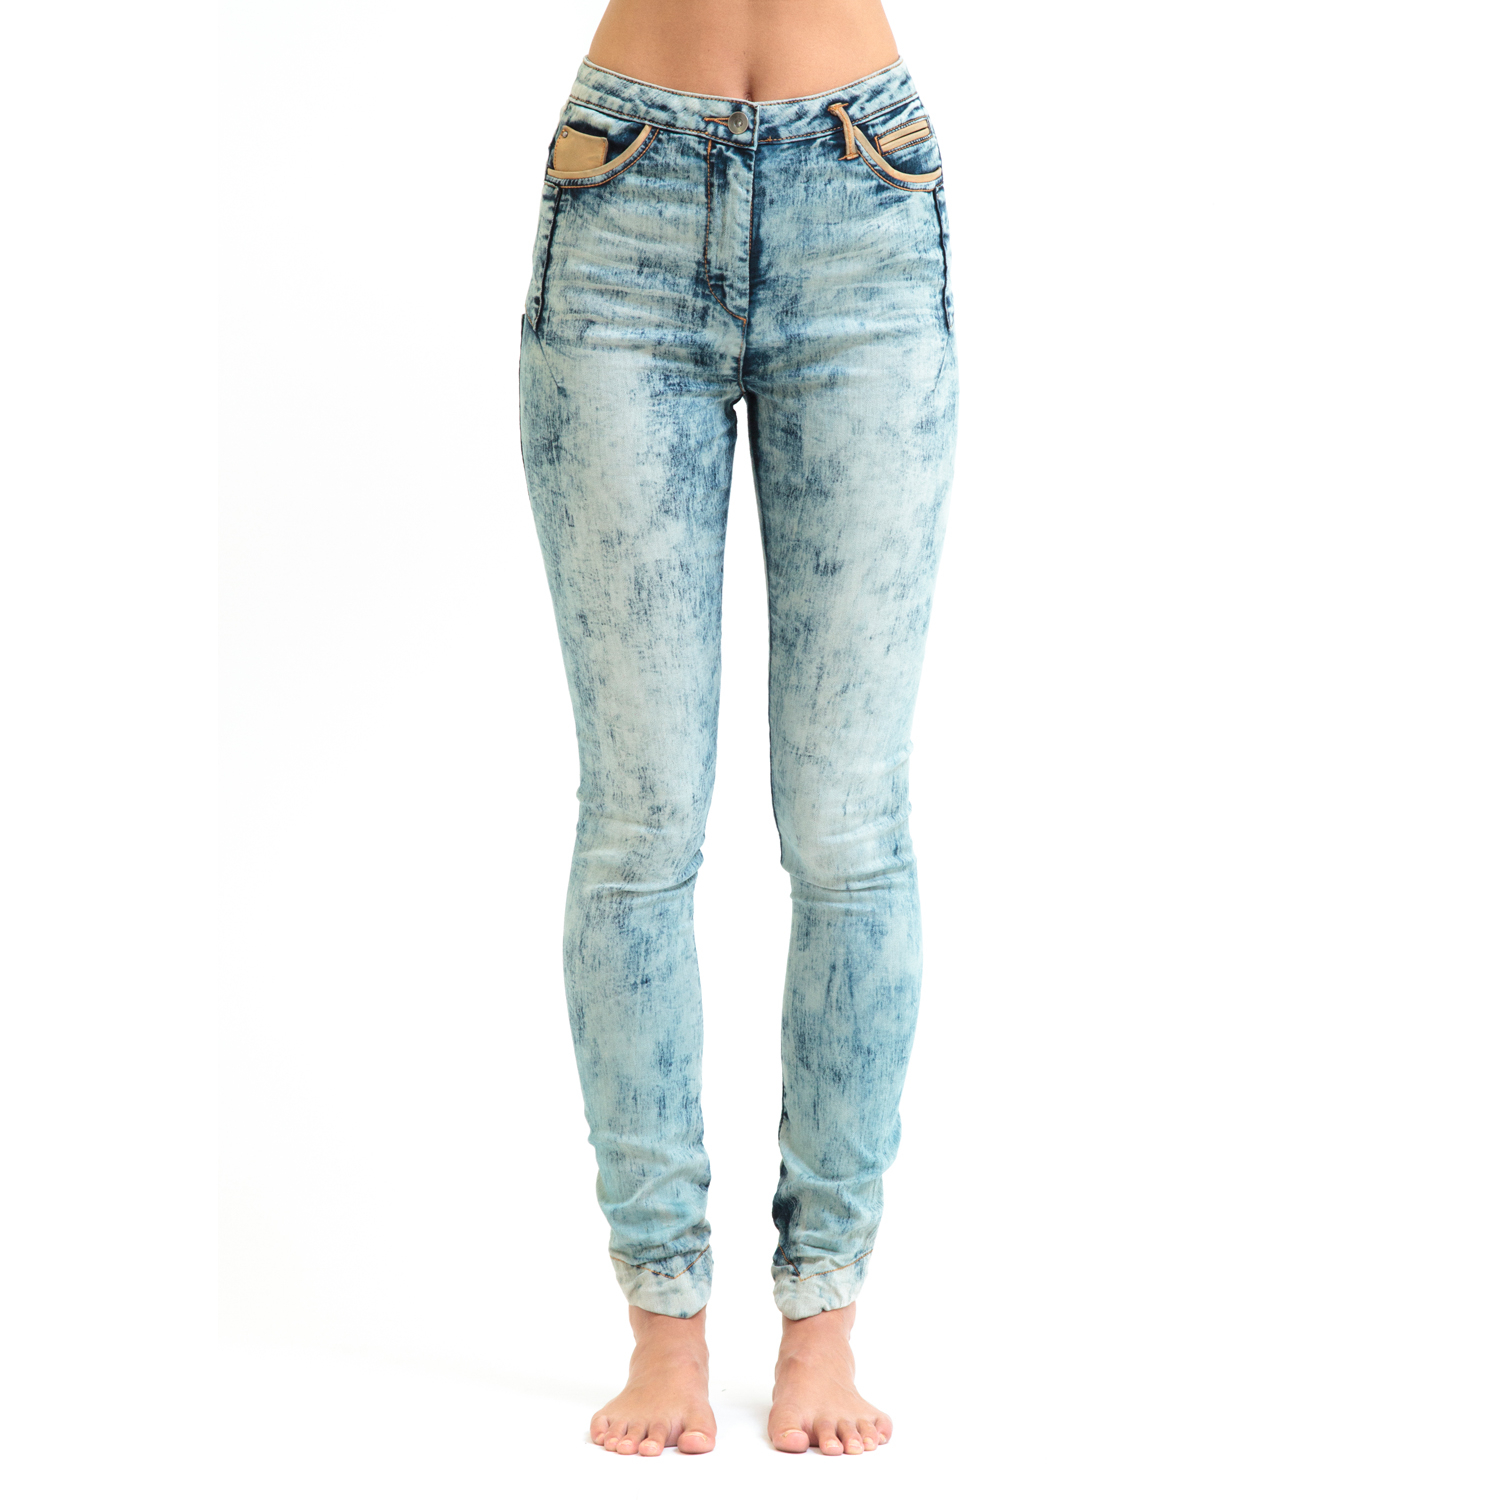 Shop acid wash skinny jeans, dark rinse skinny jeans and even black skinny jeans that will pair perfectly with your favorite pair of heels, some knee-high suede boots or a new pair of slide sandals for the summertime. If you're looking for something a little bit edgier, try out a pair of high-waisted jeans that are inspired by vintage styles.